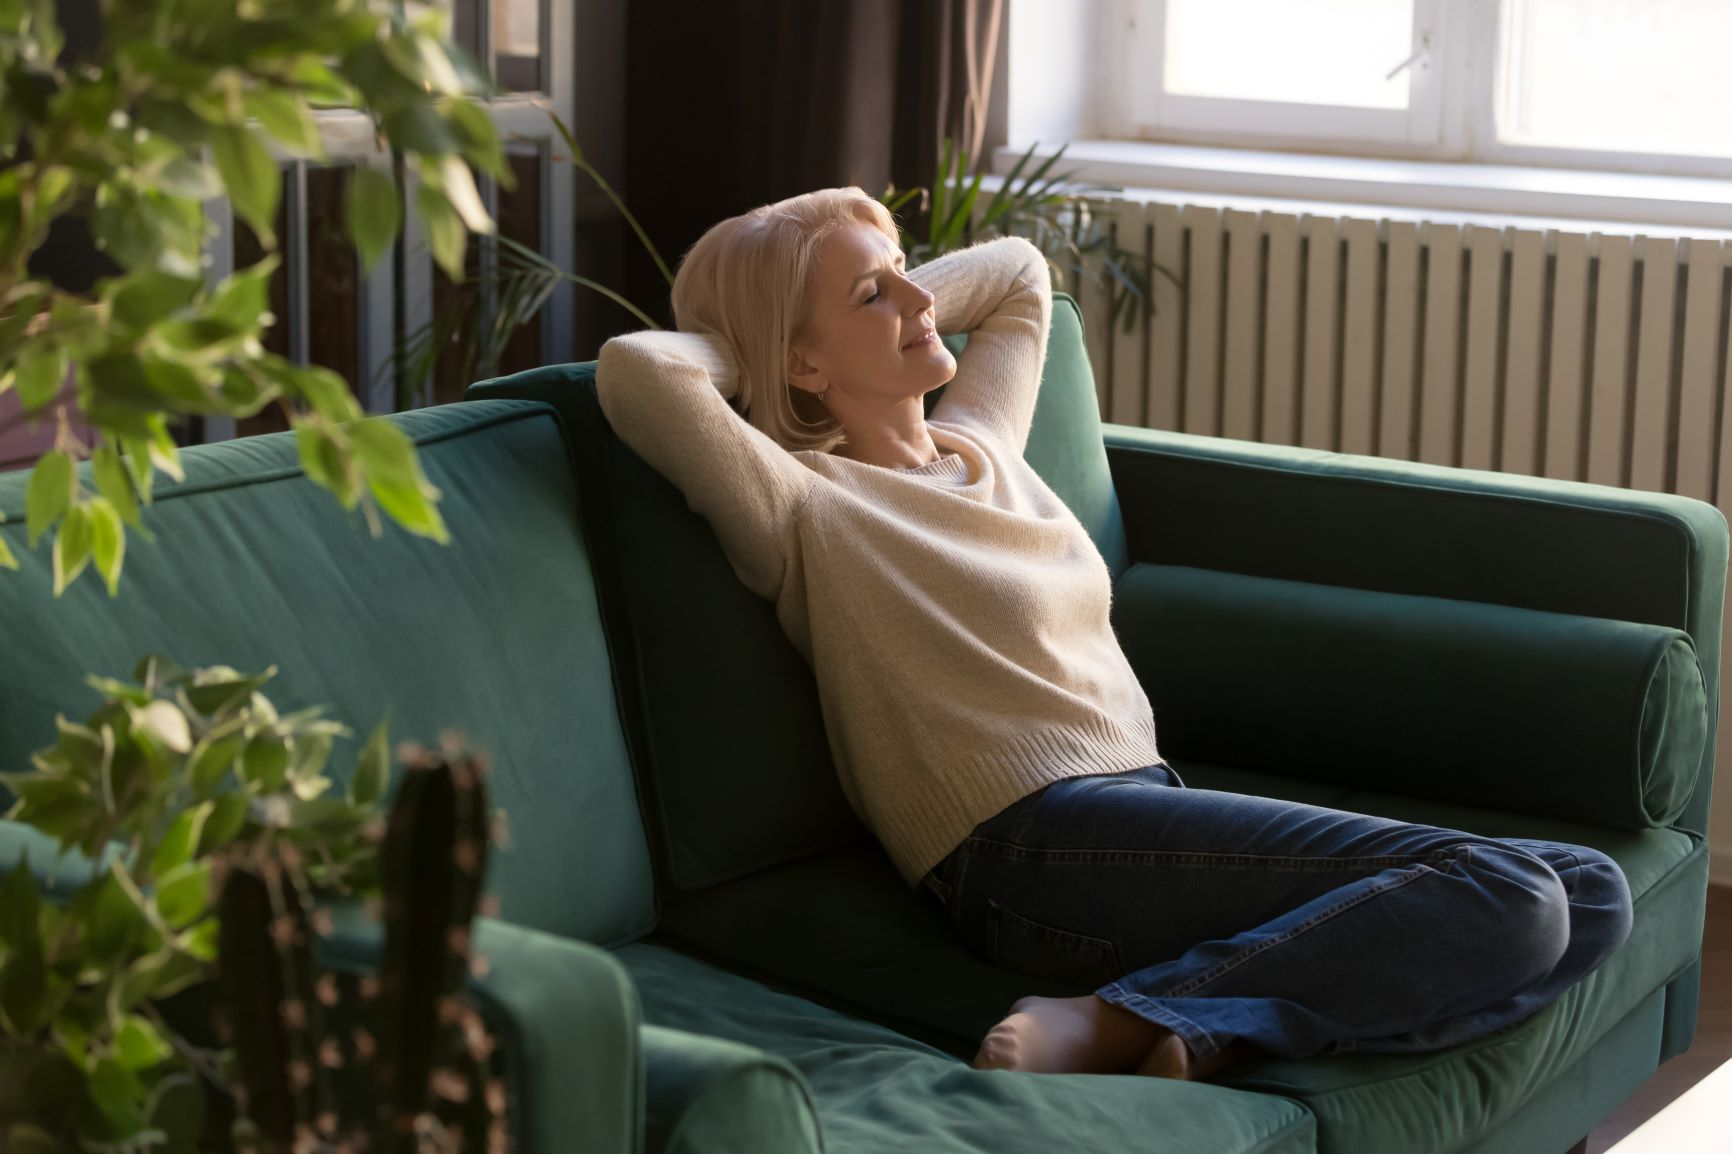 Petite Blond in pink sweater and jeans dreaming on jade couch with plants, manifest your dream life, manifestation for beginners